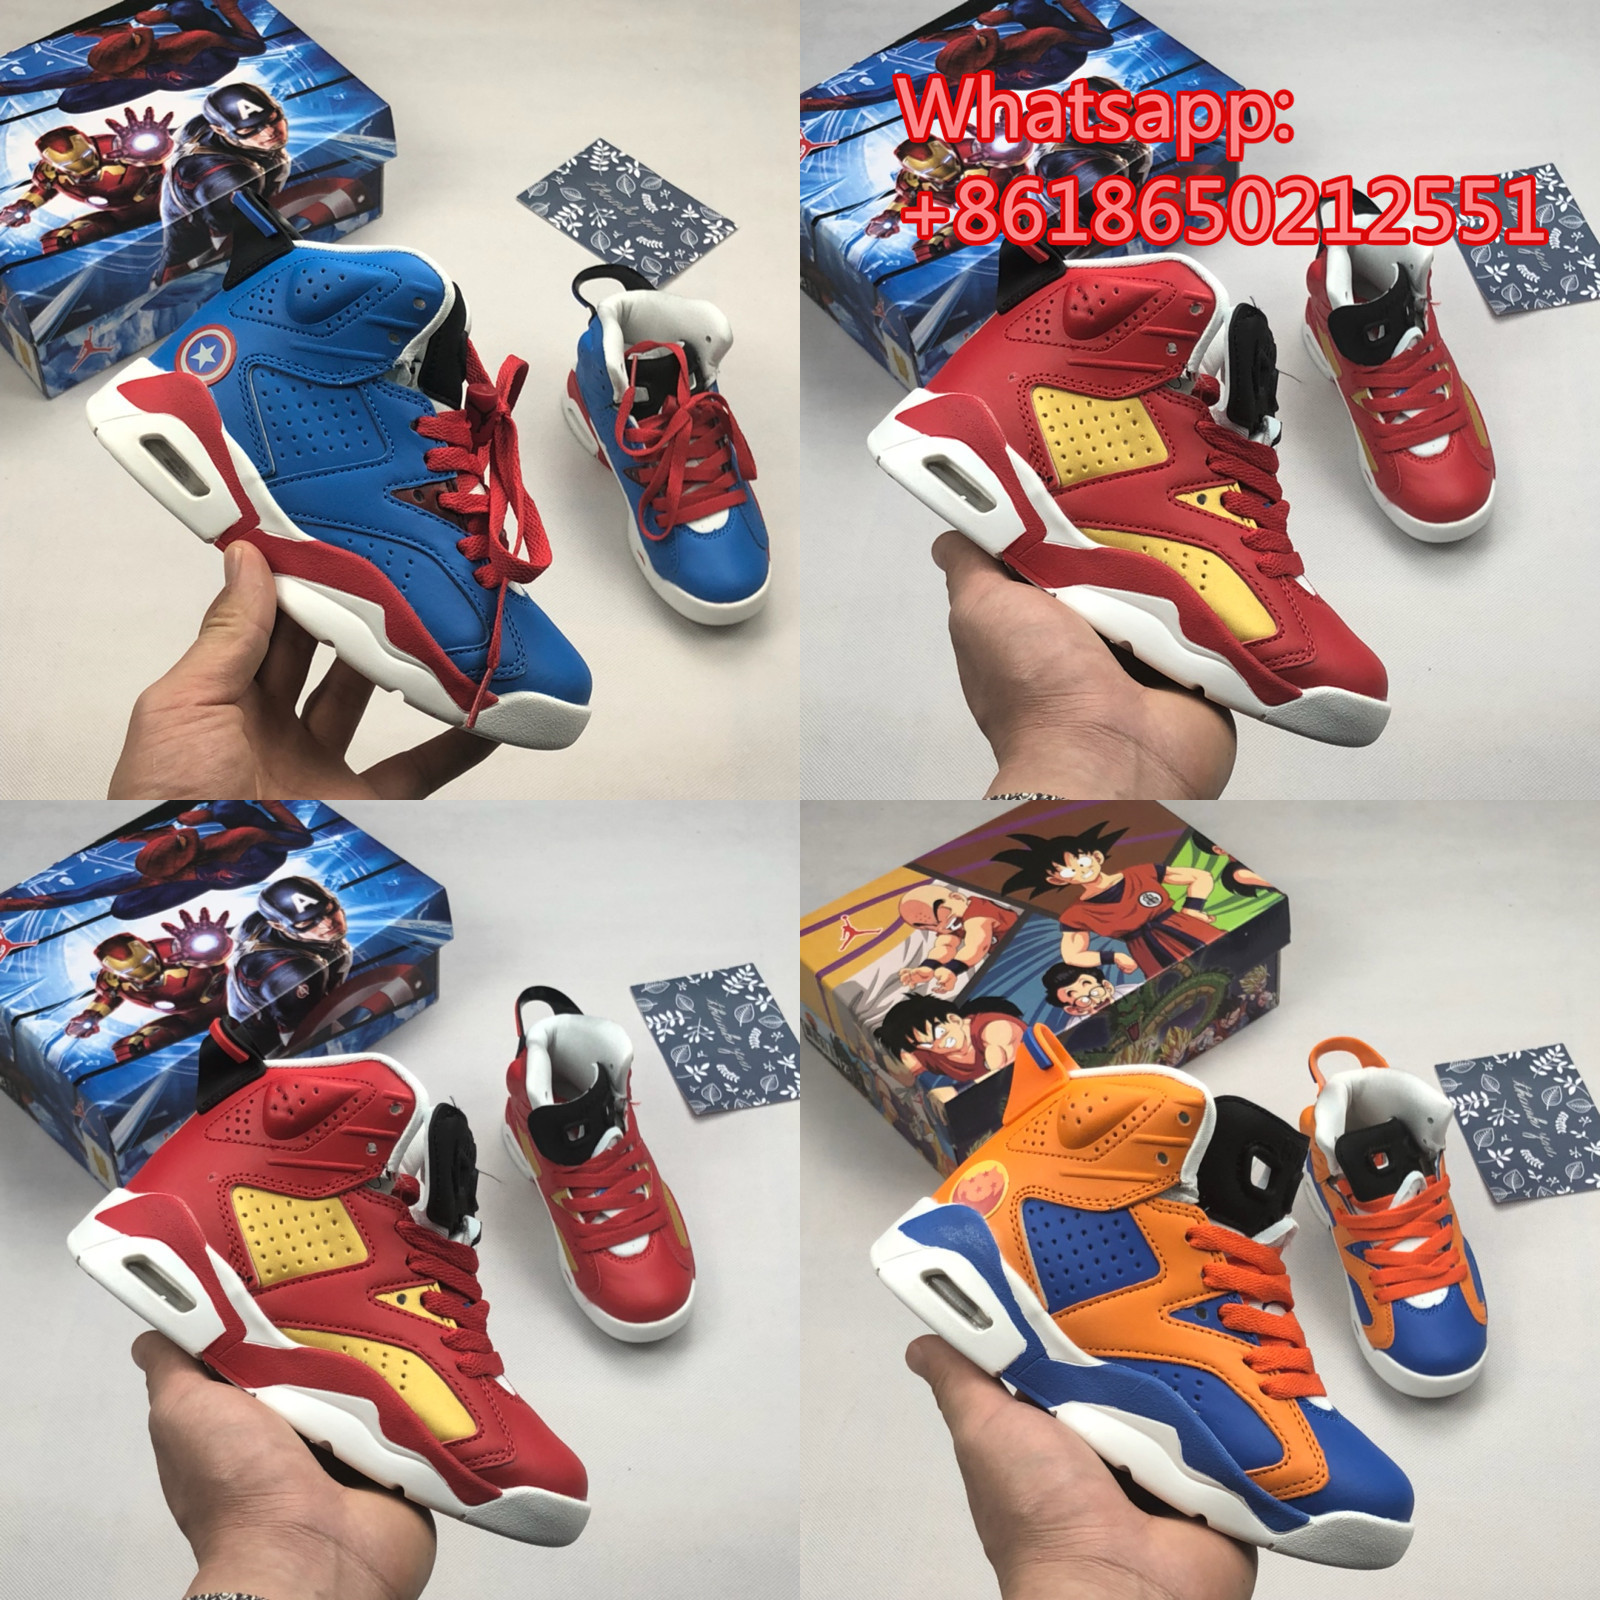 Basketball-Shoes Sneakers Oreo Air-Jordan Low-Spiderman Infrared Children's Chicago White